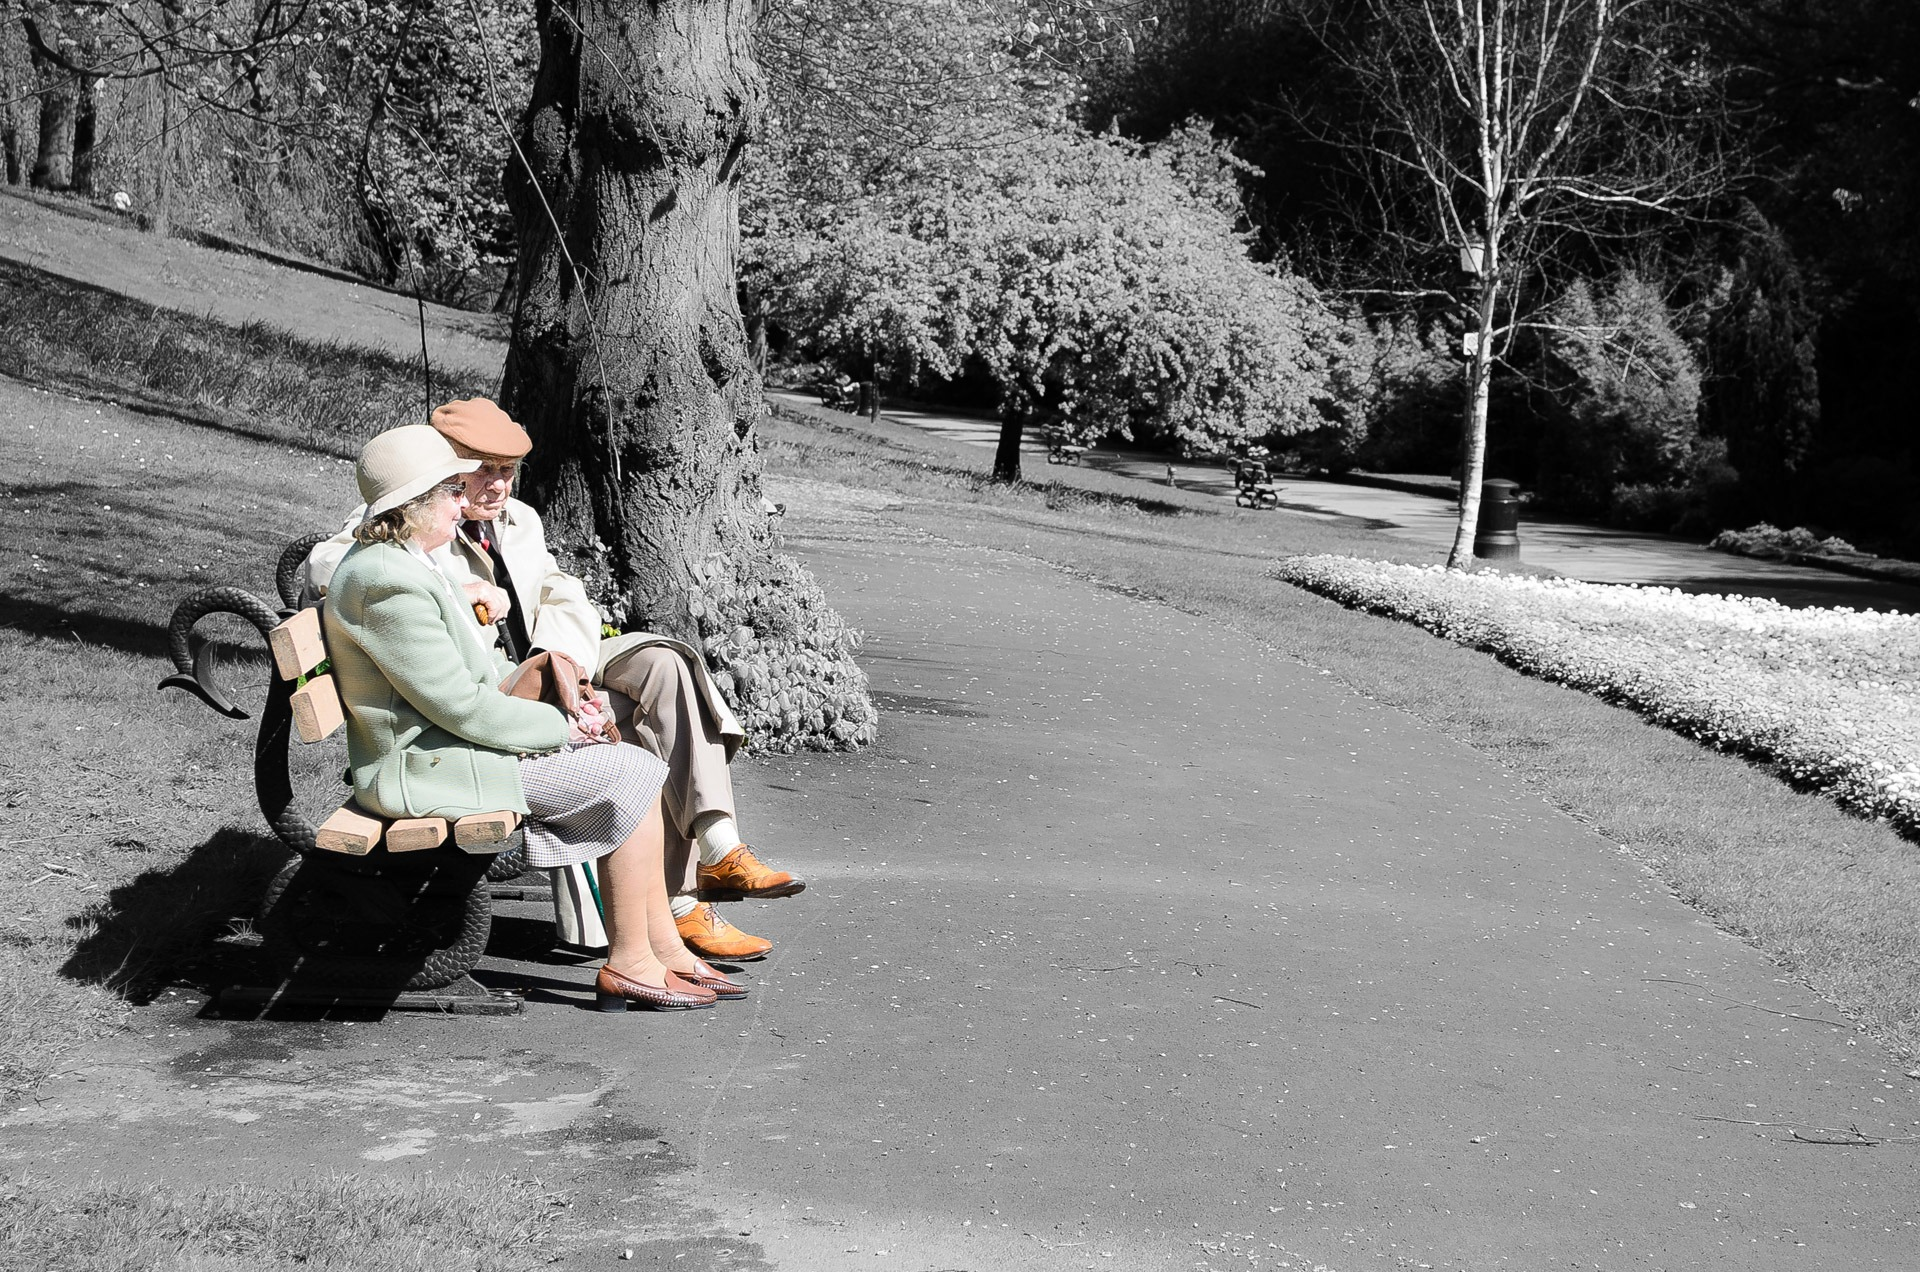 people_in_the_park_204264